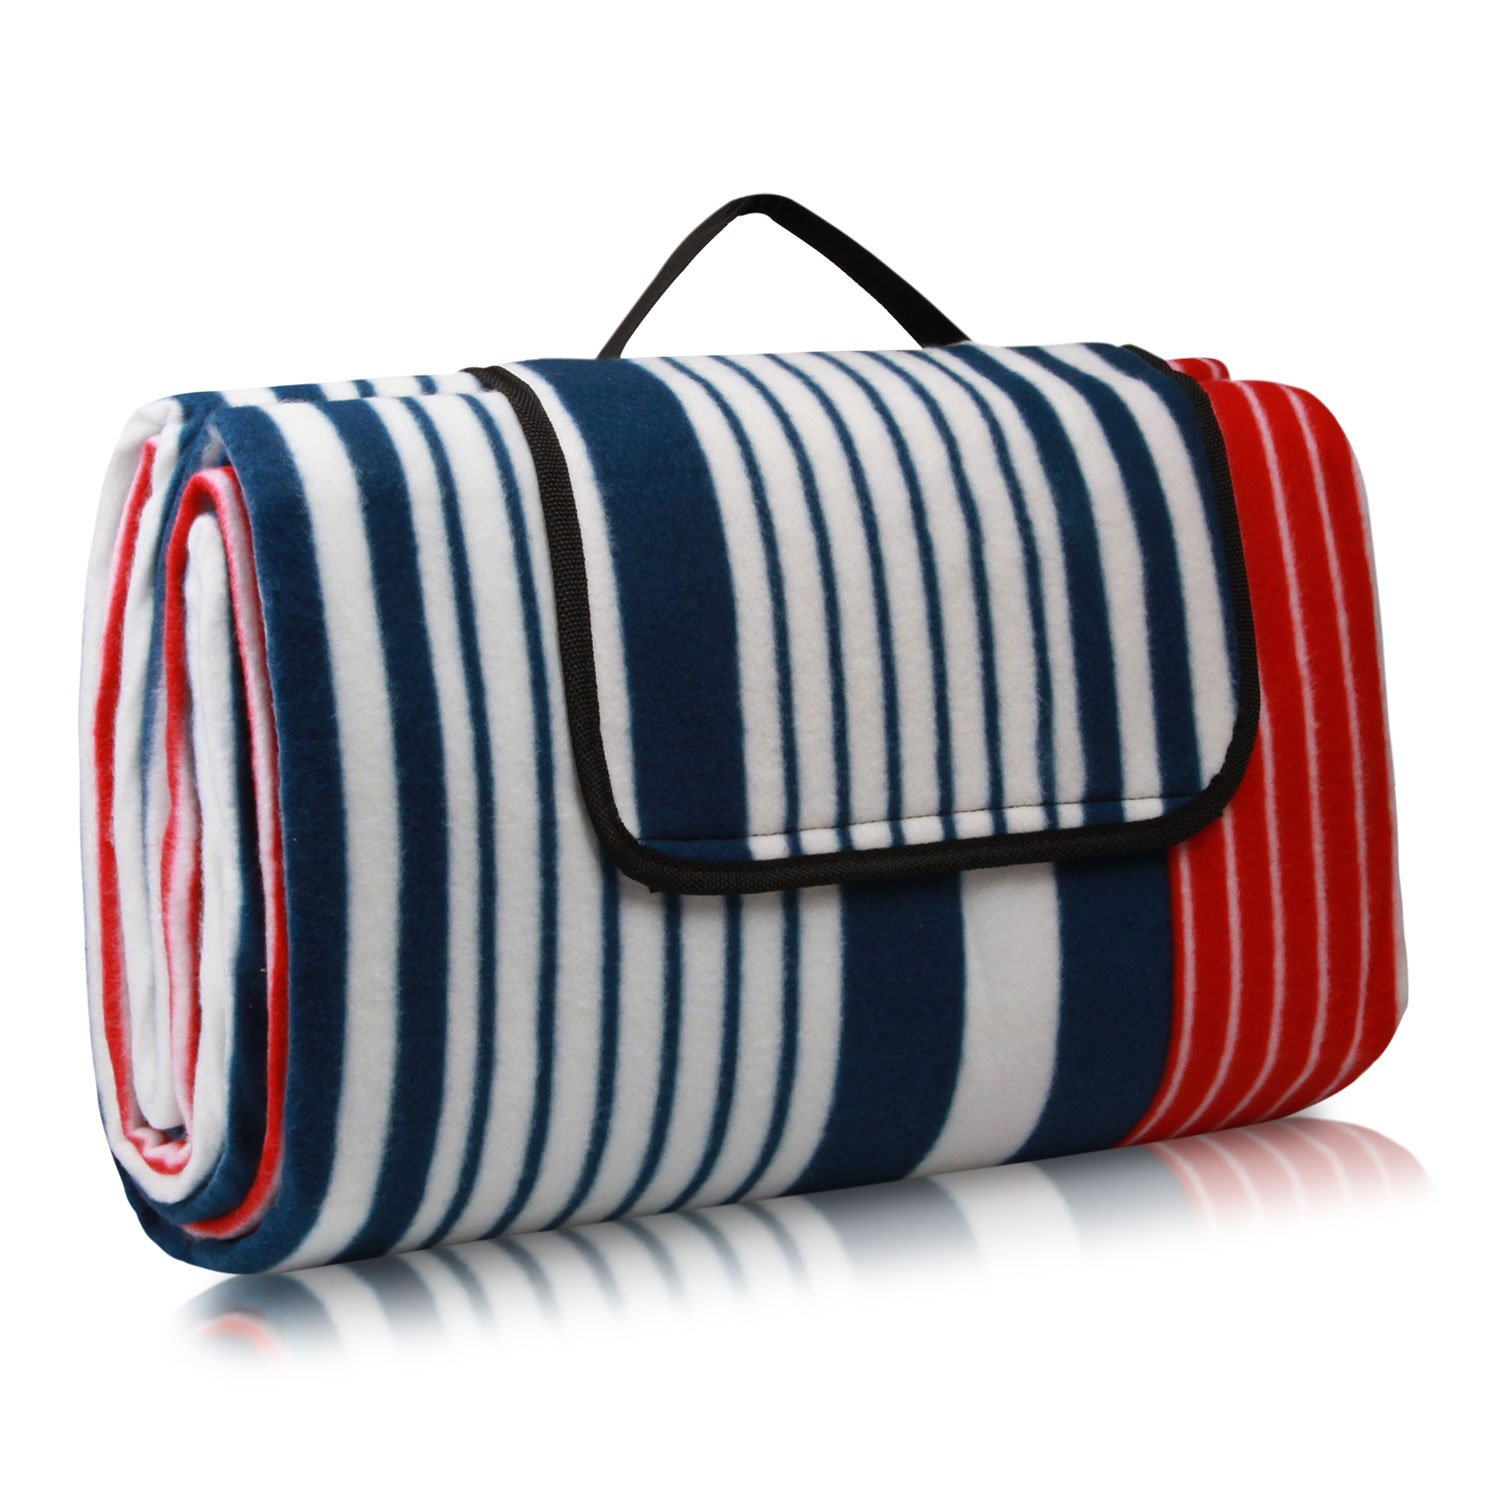 200 x 200 cm Foldable Beach Mat Picnic Blanket Waterproof Sandproof Outdoor Picnic Rug Mat with Handle for camping,family day out, travel-Blue LonproUK